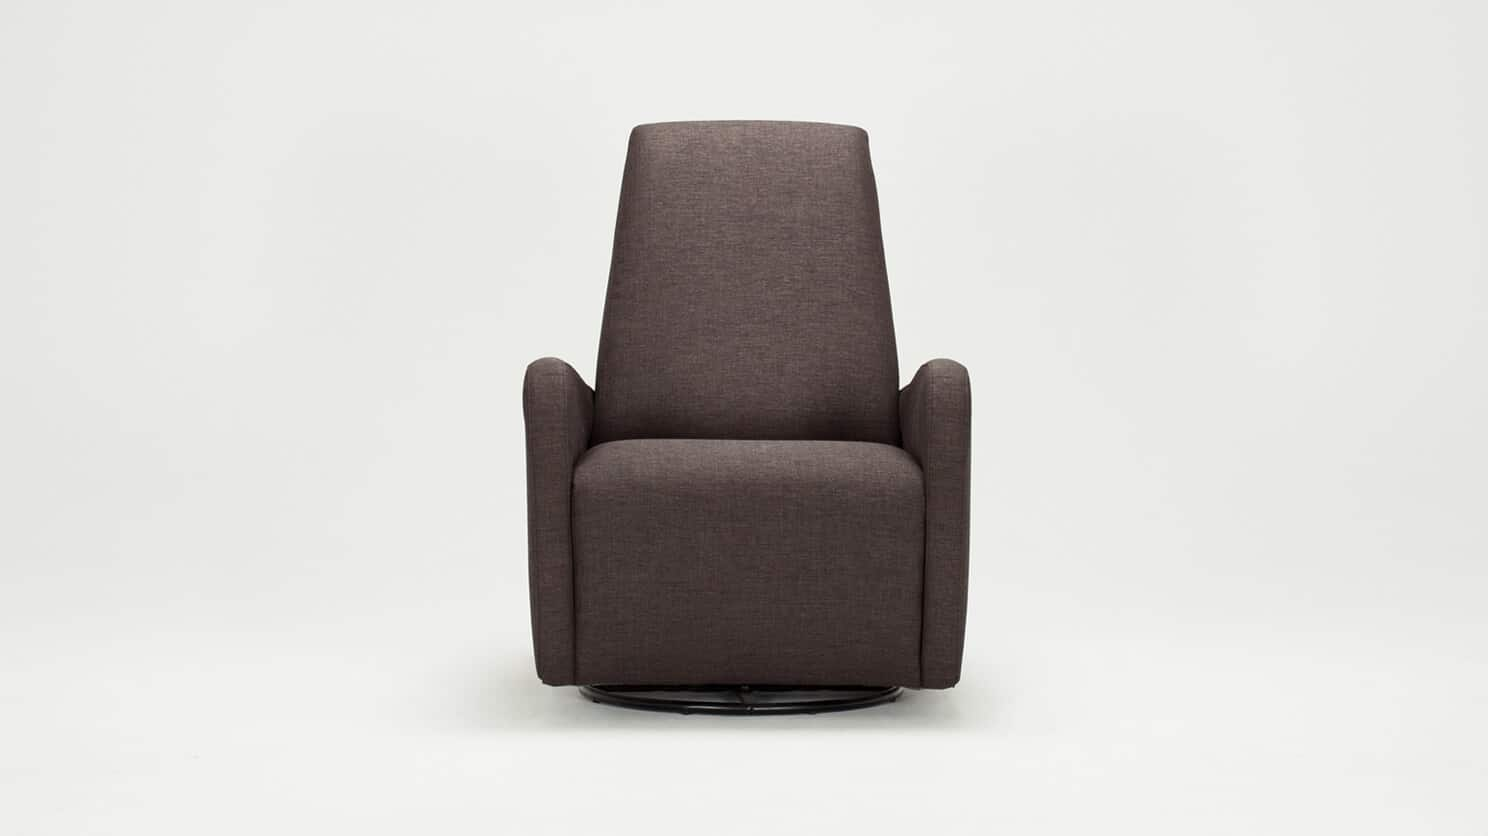 30073 71 1 chairs karbon swivel chair polo slate front 02